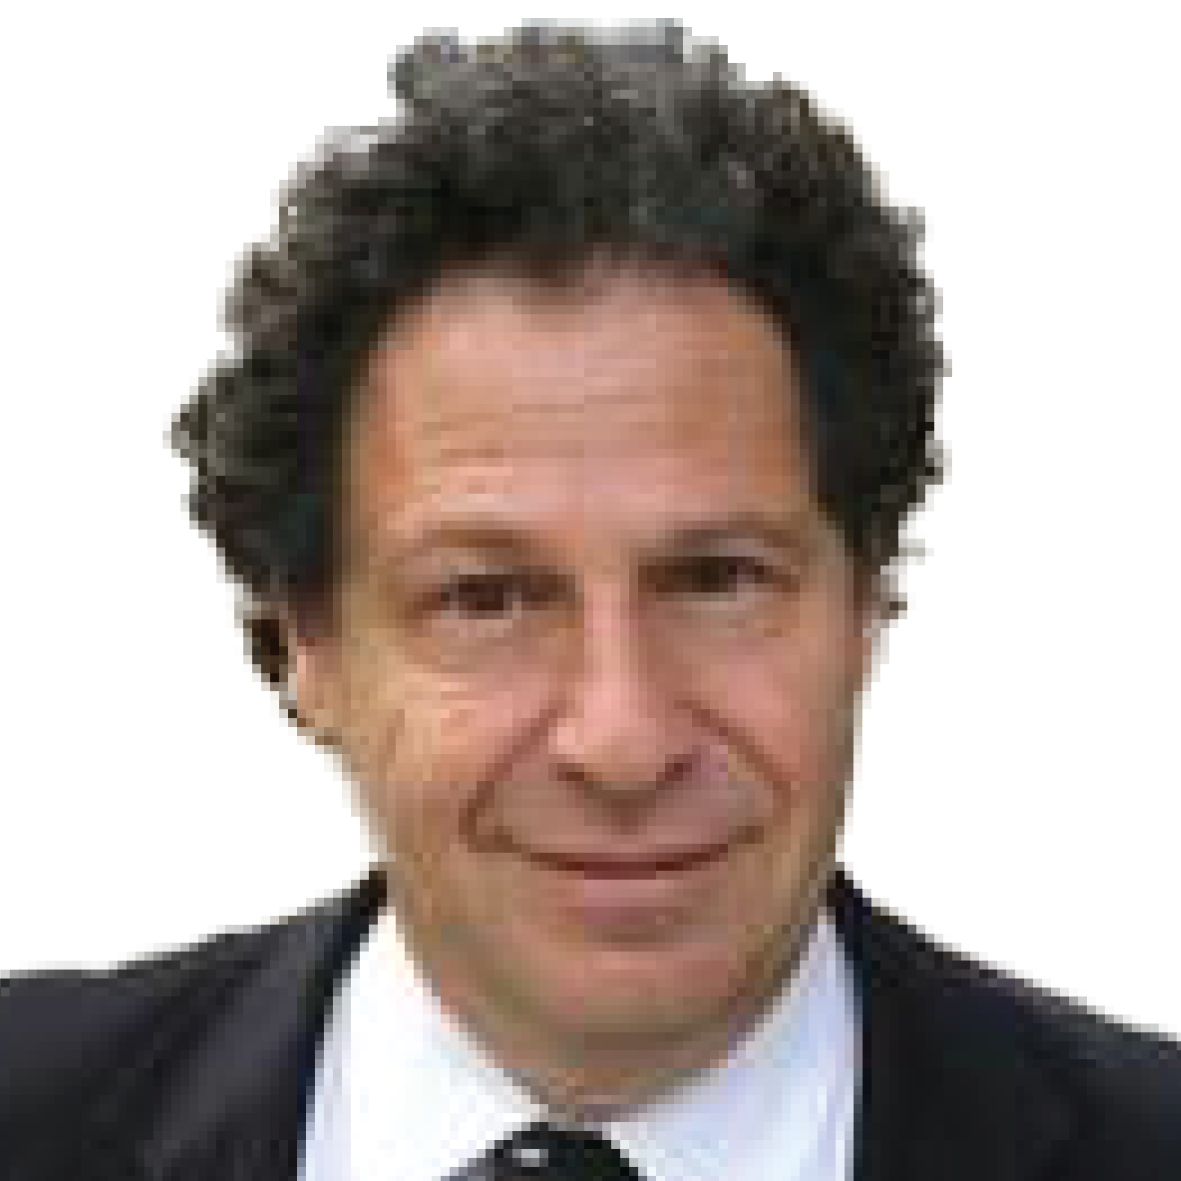 Saul Estrin, Professor of Management and Deputy Head of the Department (Strategy and Resources), London School of Economics